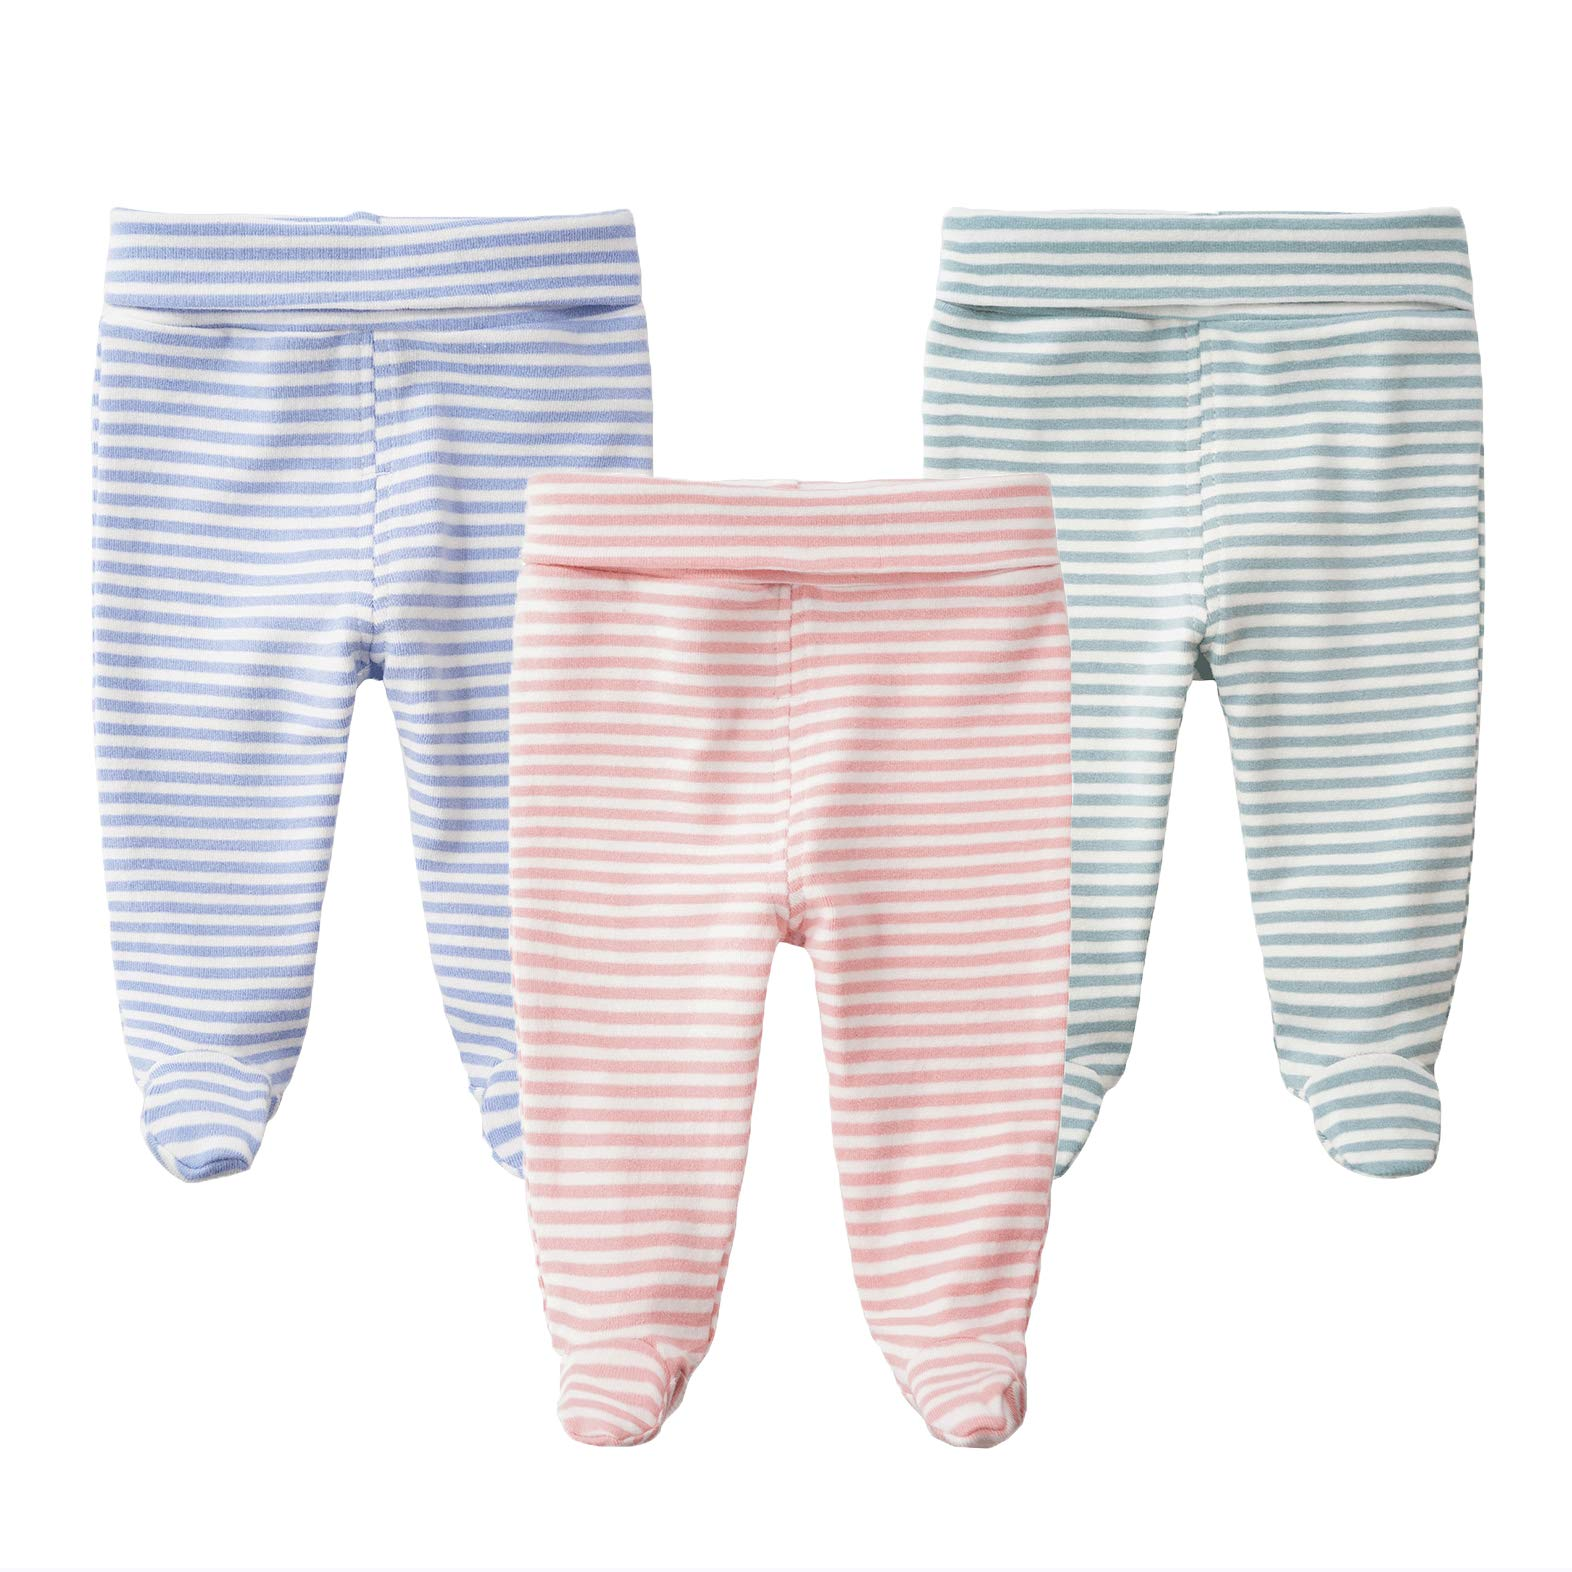 Teach Leanbh Infant Baby Cotton High Waist Footed Pants Casual Leggings 0-12 Months (0-3 Months, C)